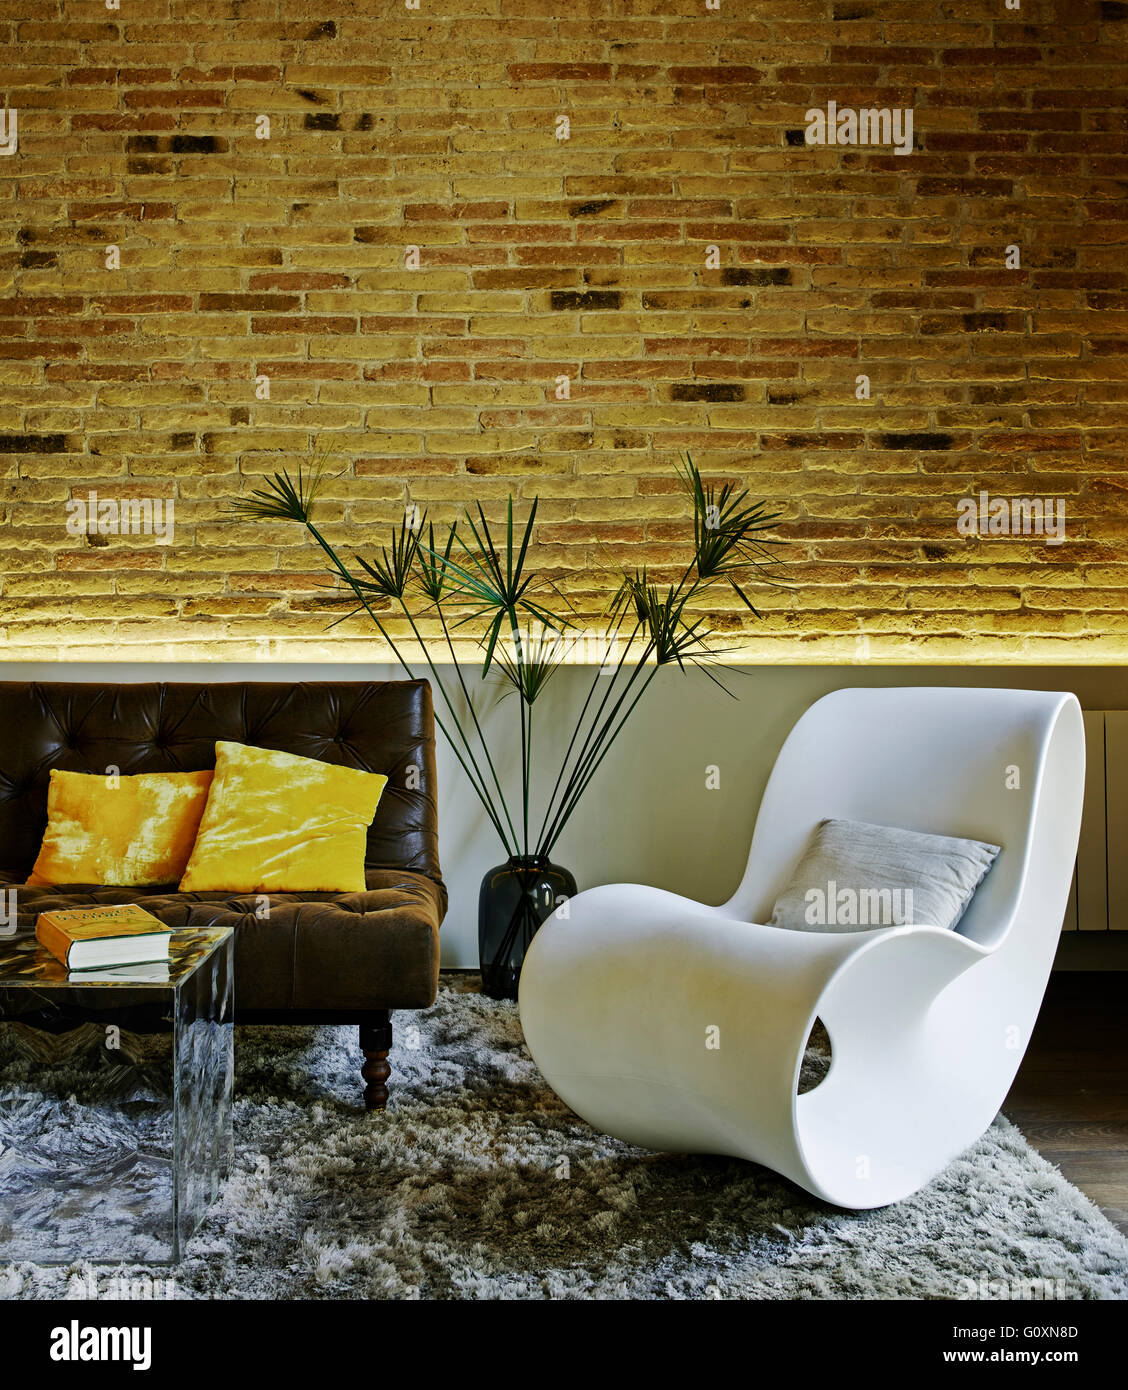 Nou De La Rambla Apartment Barcelona Spain Partial View Of Contemporary Living Room With Exposed Brick Wall And Leather Brown Couch